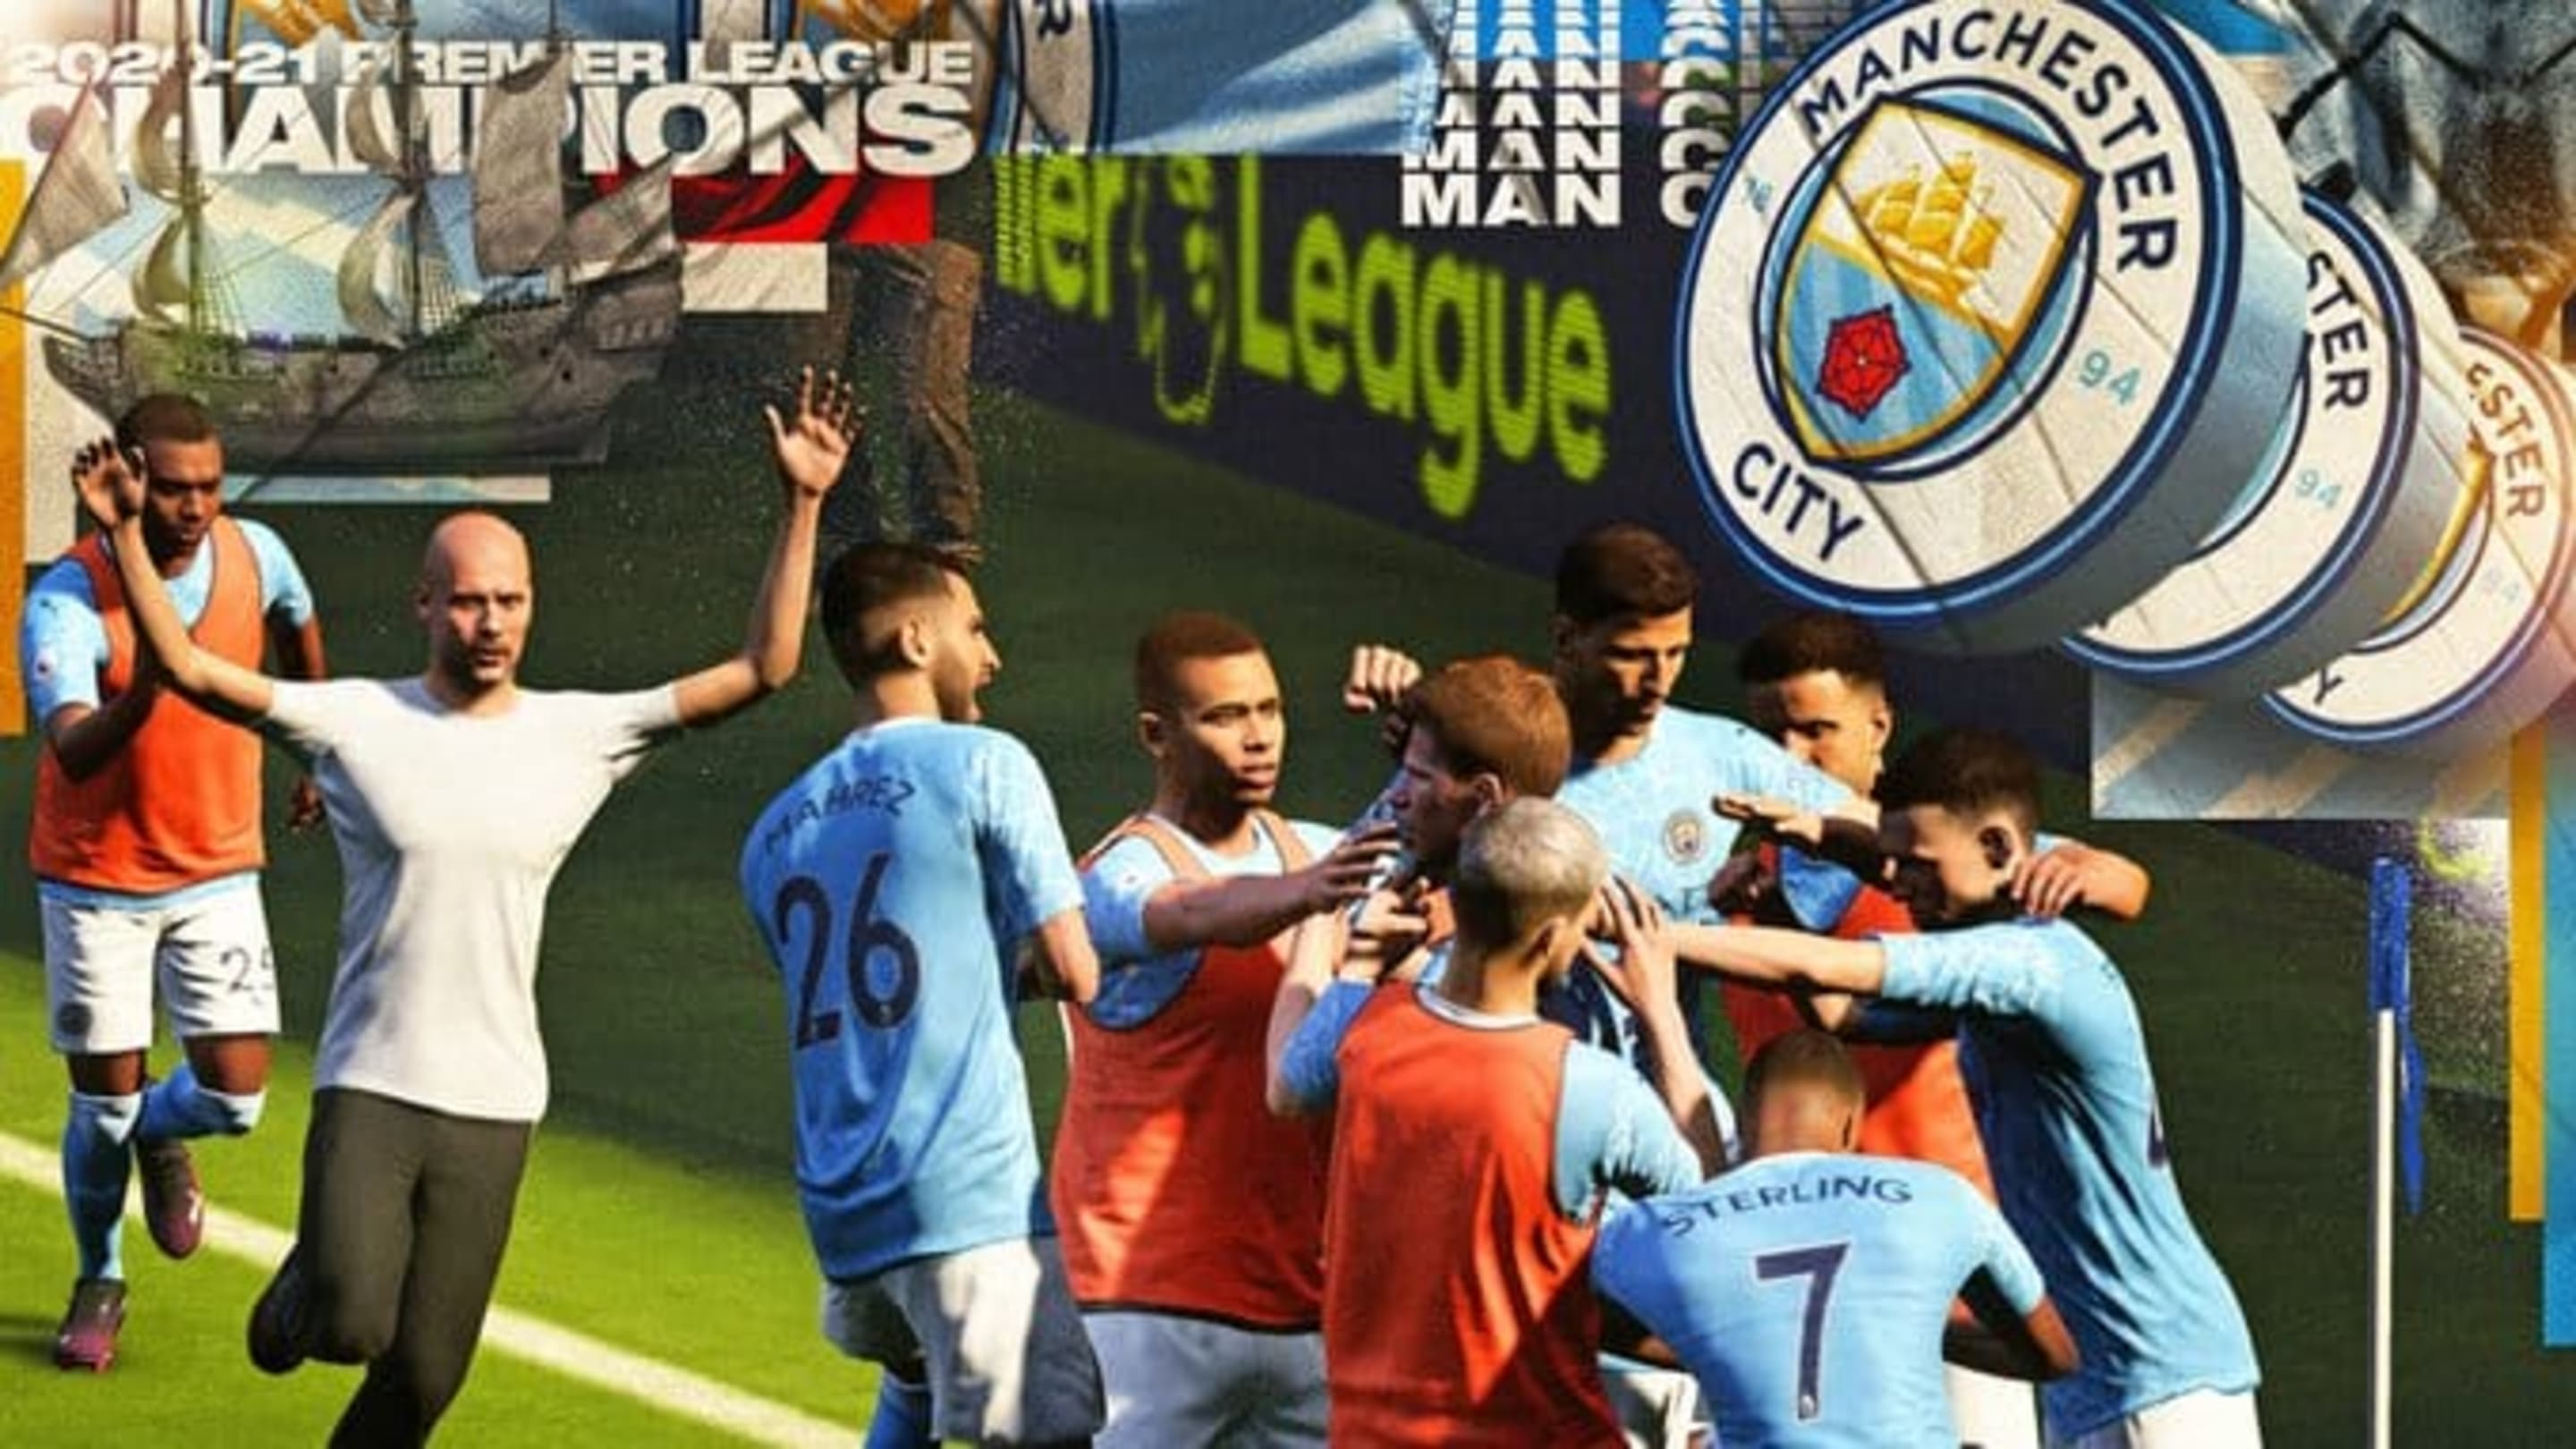 FIFA 21 Showdown Cards Released for UCL Final: Walker and Werner